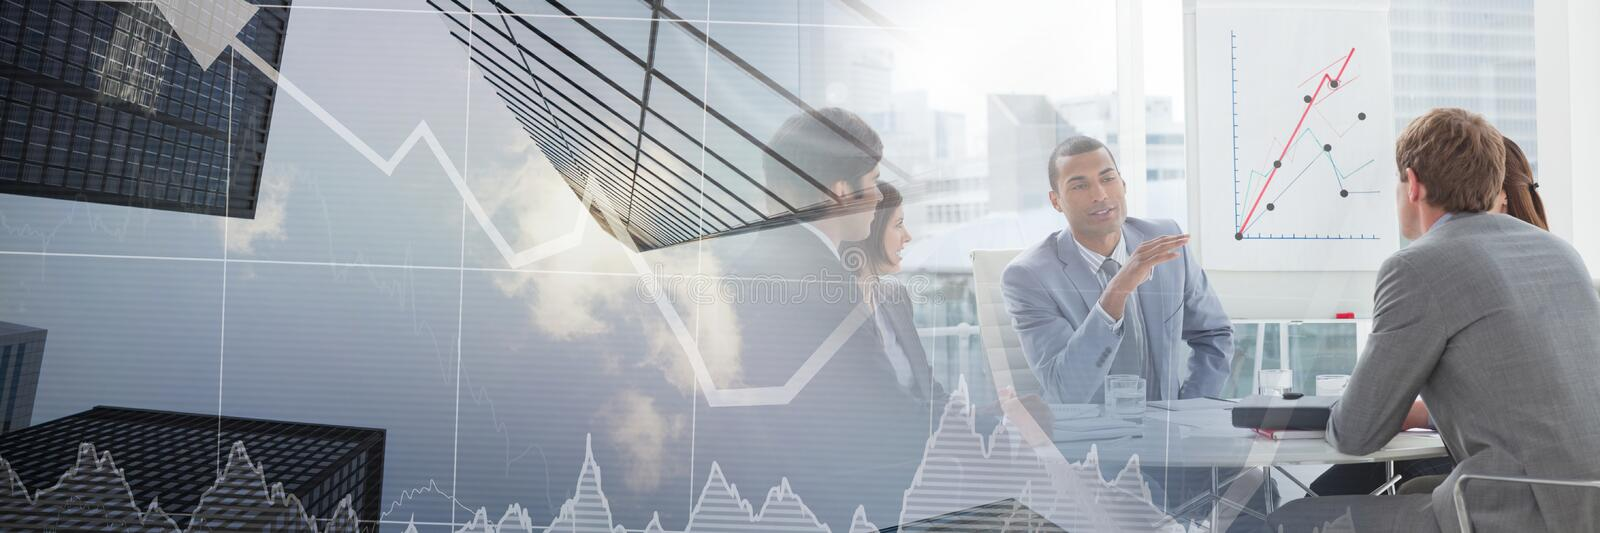 Business people having a meeting with financial charts transition effect stock image